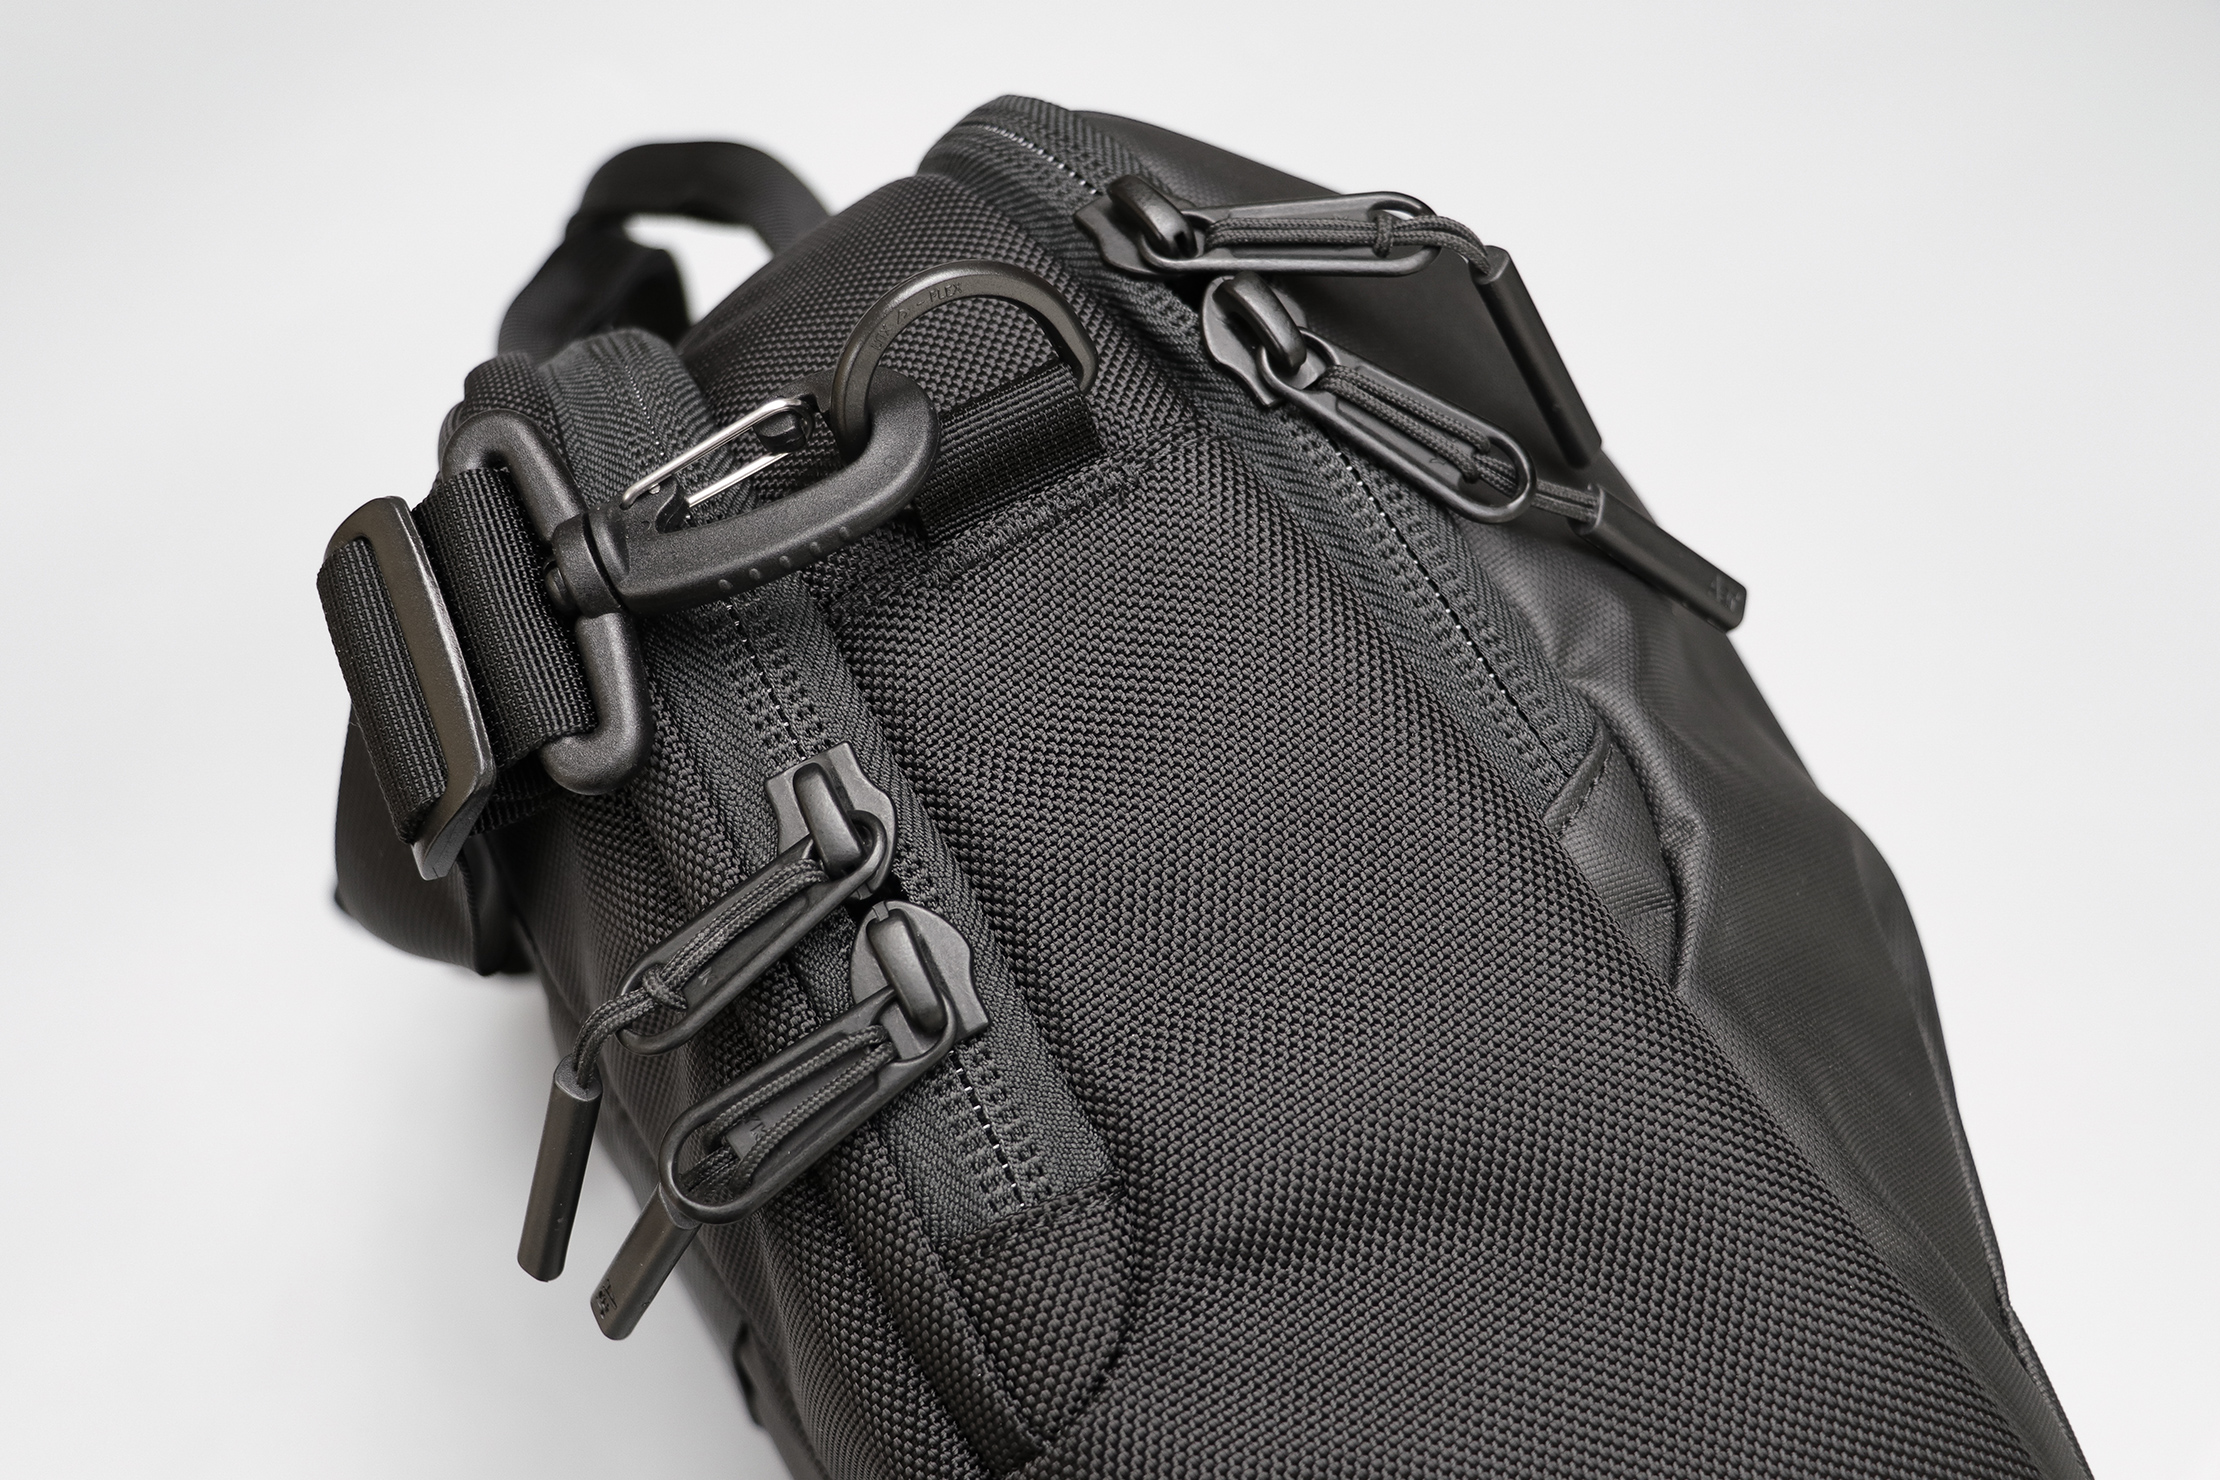 Aer Commuter Brief 2 Zippers & Hardware